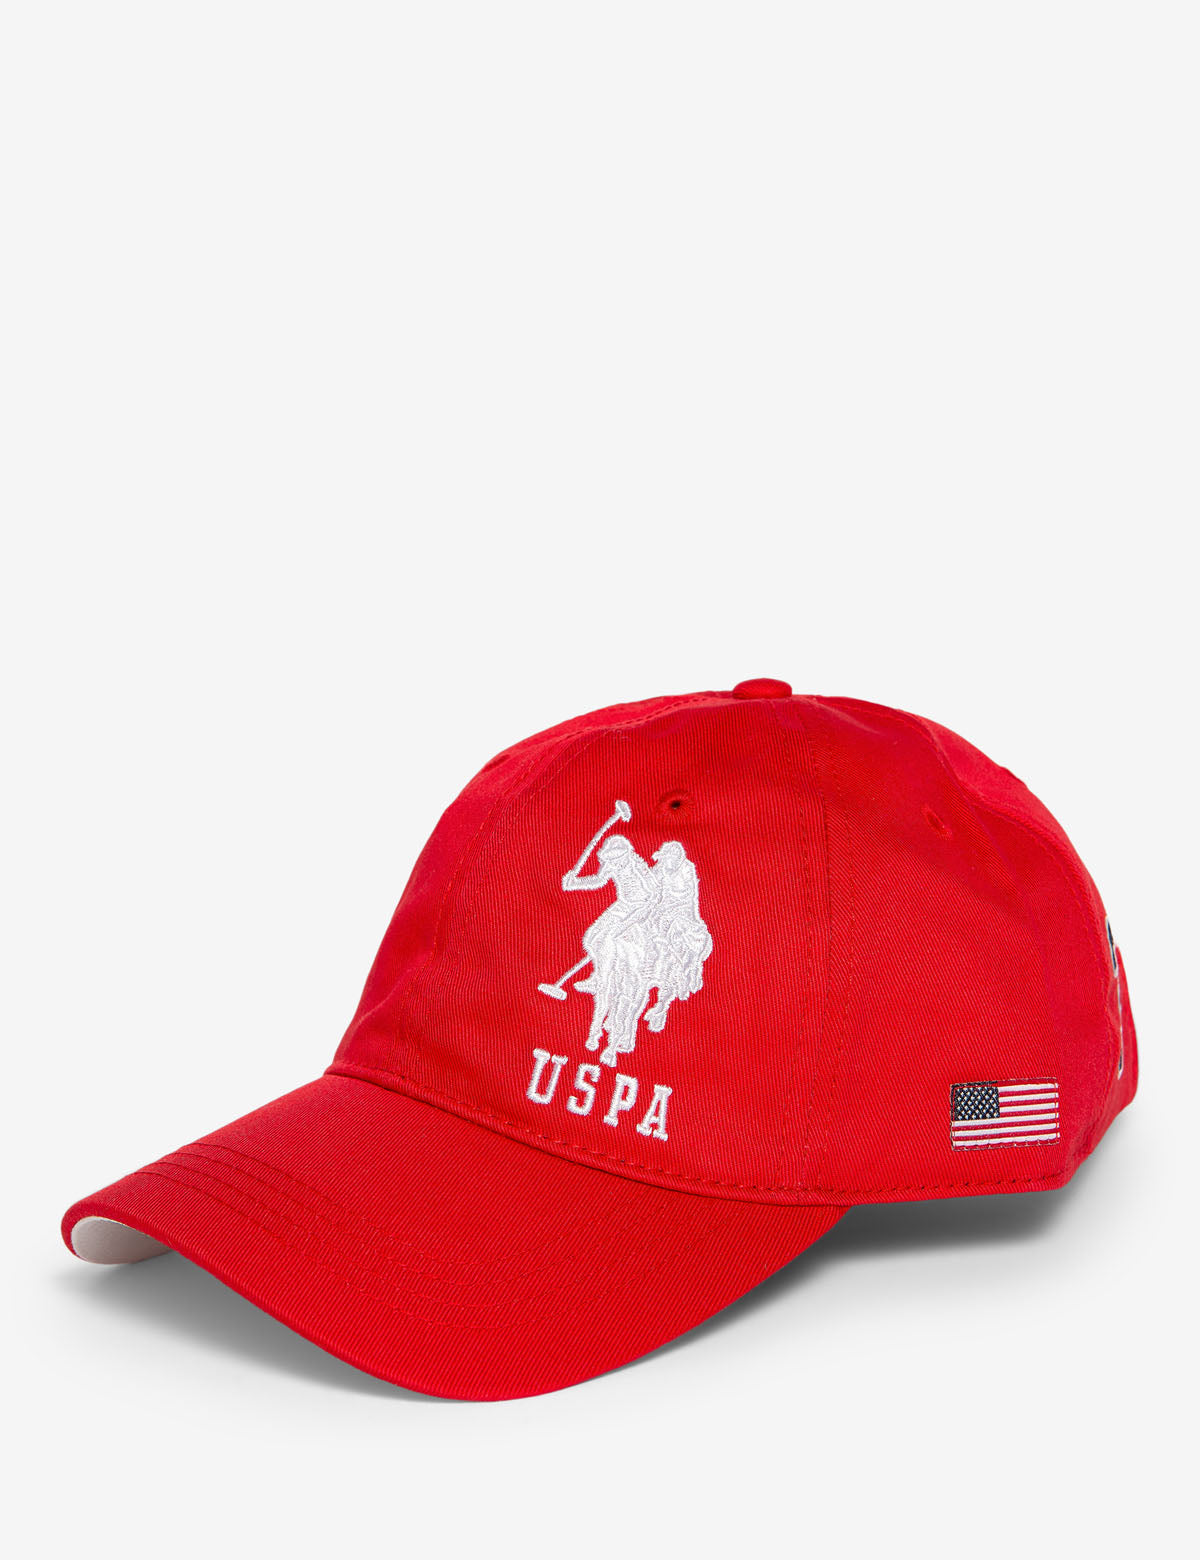 BASEBALL CAP WITH LARGE LOGO